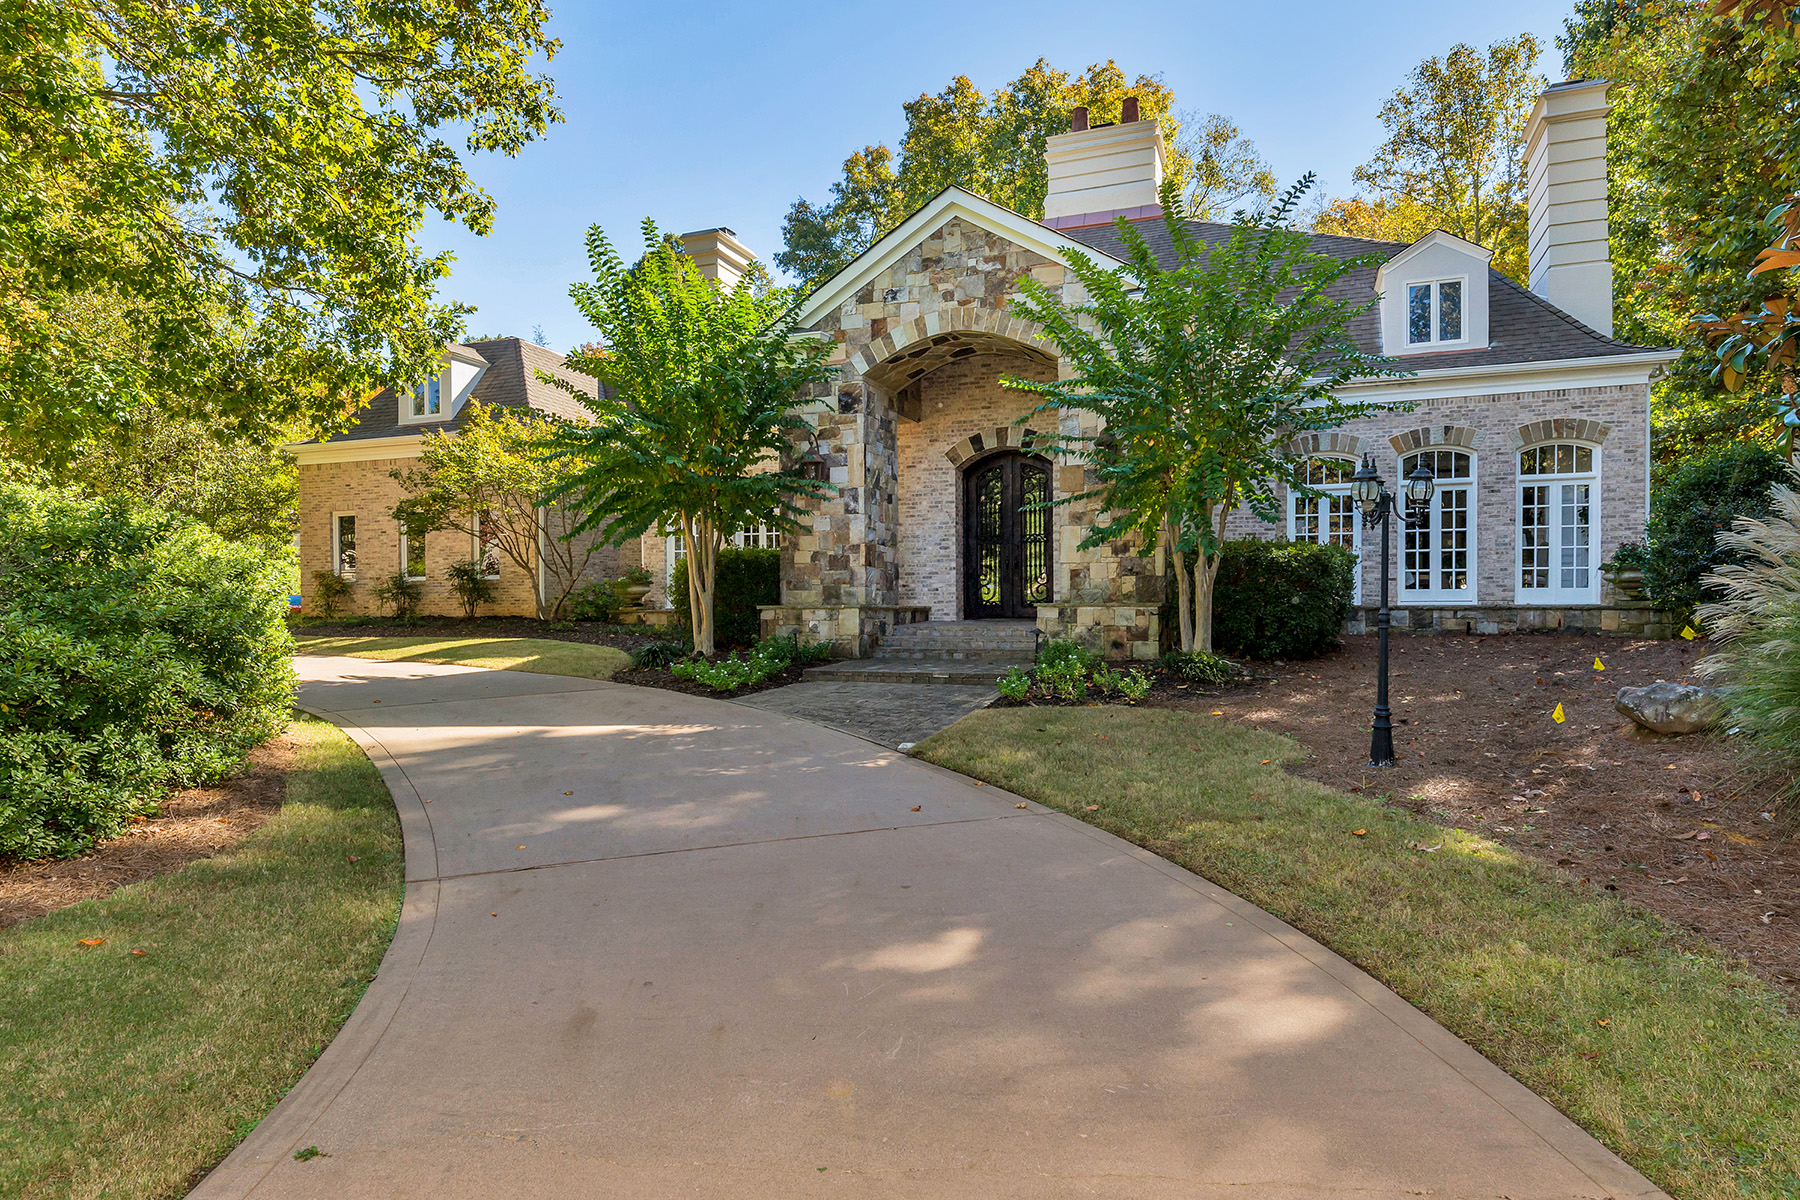 Single Family Home for Sale at European Elegance in The Heart of Sandy Springs 890 Marseilles Drive, Sandy Springs, Georgia, 30327 United States